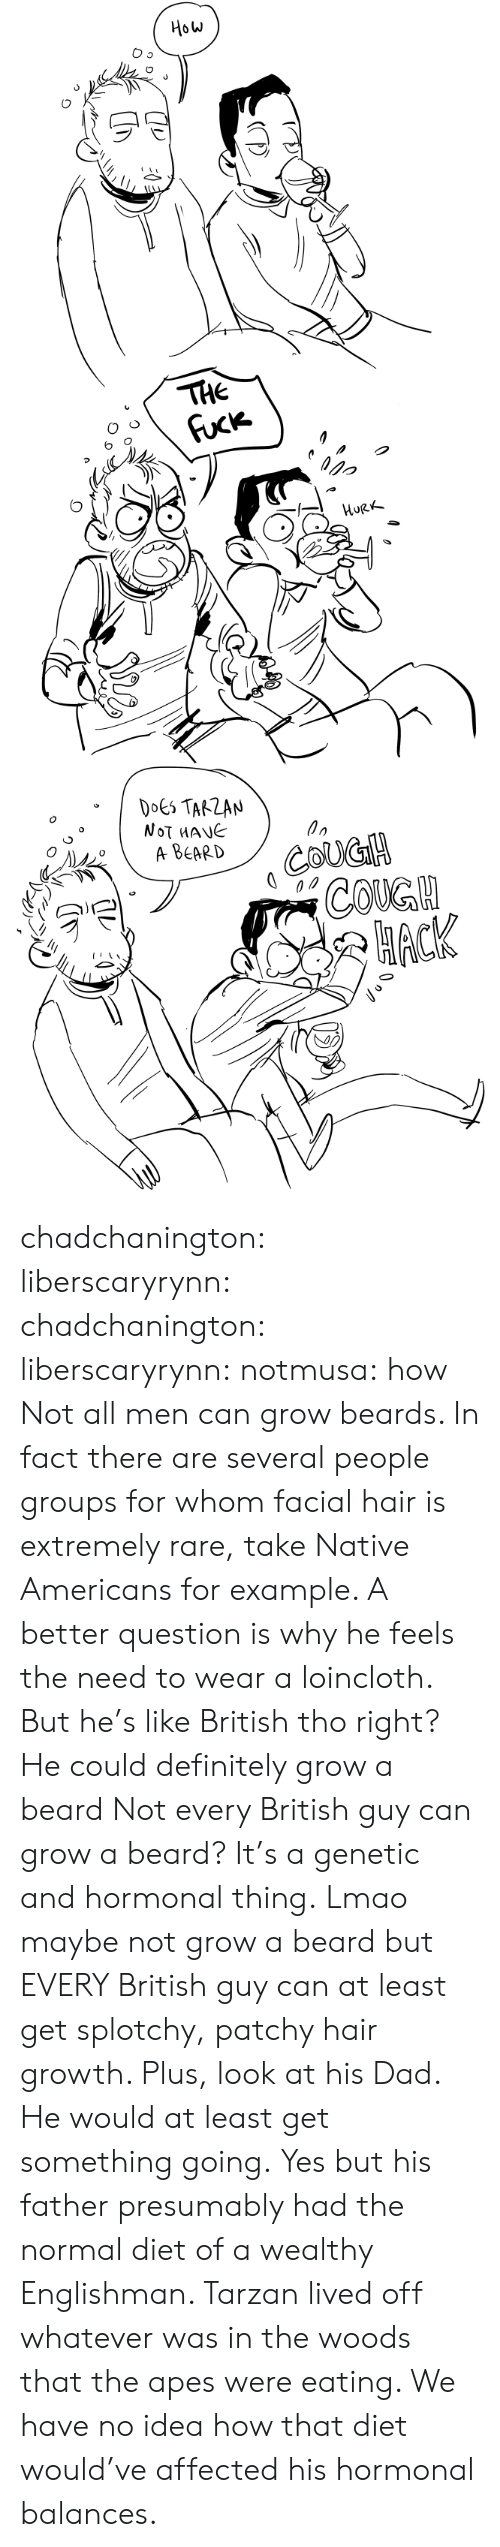 cough: How  THE  Fuck  орo  HURK  DOES TARZAN  NOT MANE  A ВЕARD  COUGH  СOKGH  НАСК chadchanington:  liberscaryrynn:  chadchanington:  liberscaryrynn:  notmusa:  how  Not all men can grow beards. In fact there are several people groups for whom facial hair is extremely rare, take Native Americans for example. A better question is why he feels the need to wear a loincloth.  But he's like British tho right? He could definitely grow a beard  Not every British guy can grow a beard? It's a genetic and hormonal thing.  Lmao maybe not grow a beard but EVERY British guy can at least get splotchy, patchy hair growth. Plus, look at his Dad. He would at least get something going.  Yes but his father presumably had the normal diet of a wealthy Englishman. Tarzan lived off whatever was in the woods that the apes were eating. We have no idea how that diet would've affected his hormonal balances.